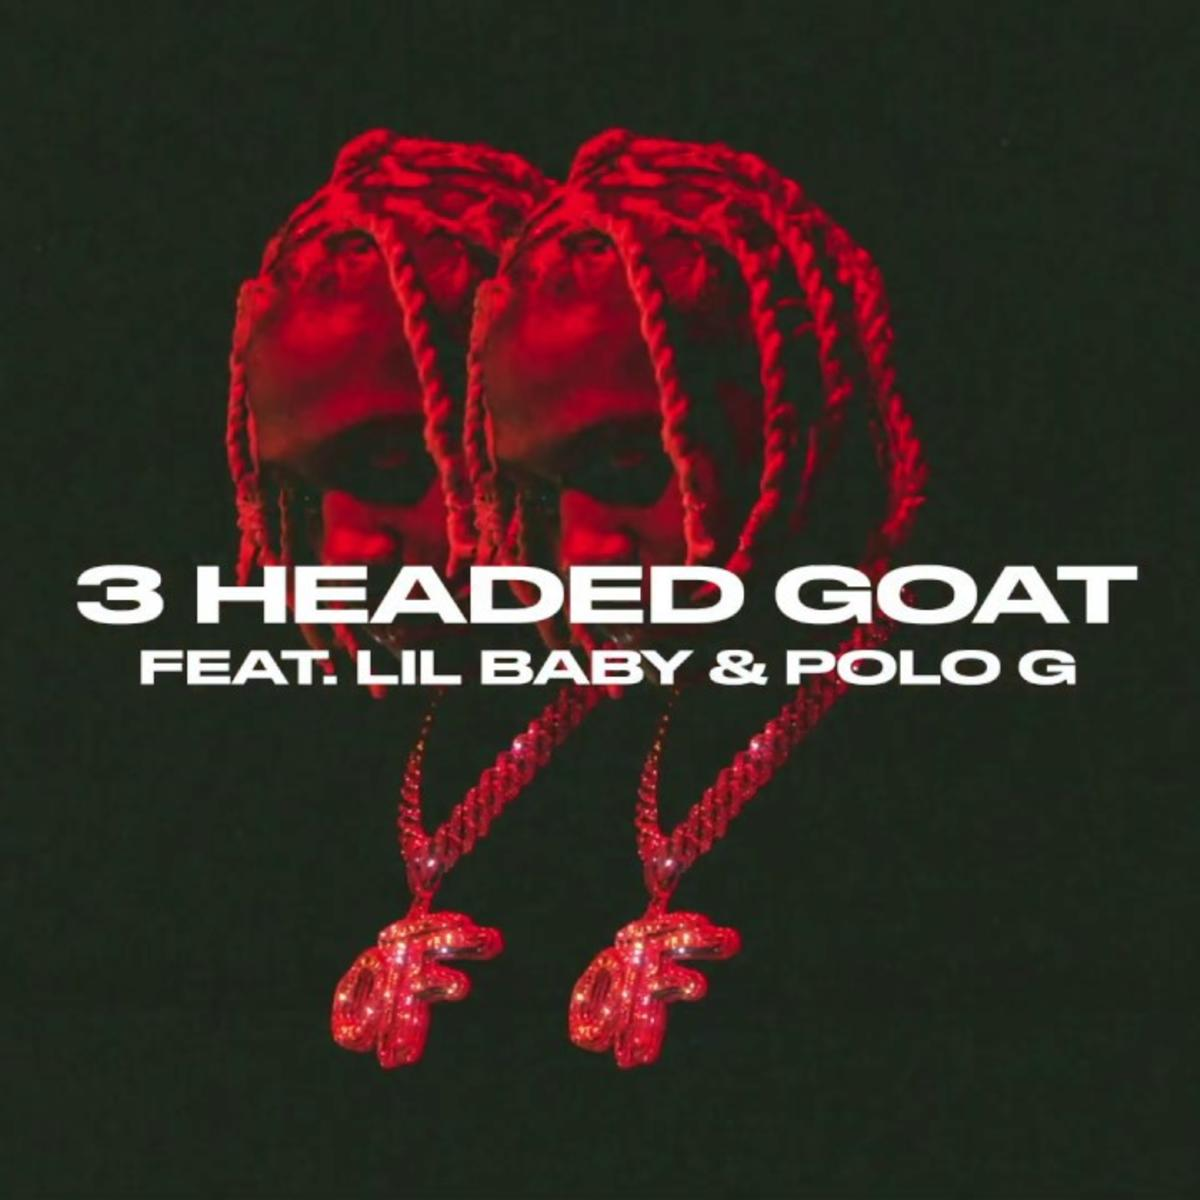 Lil Durk - 3 Headed Goat ft. Lil Baby & Polo G